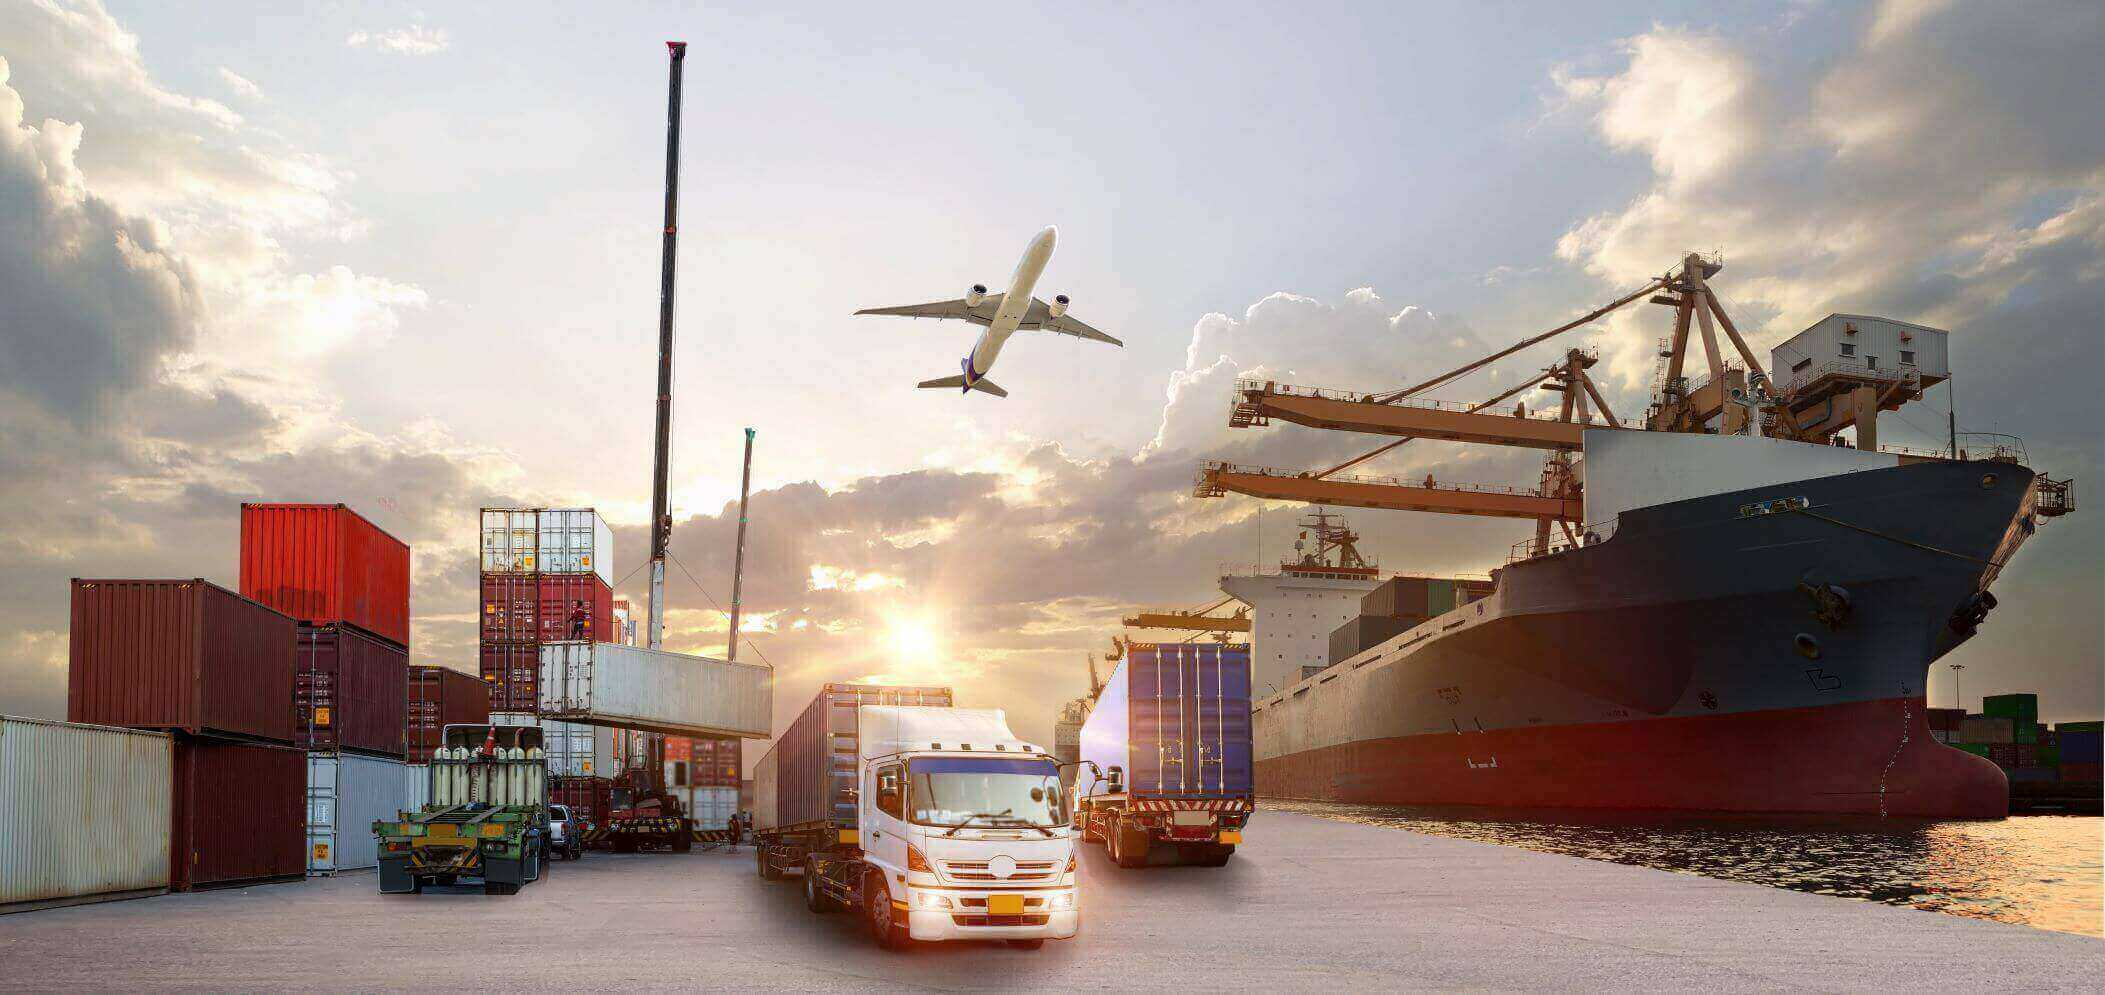 A freight forwarder specialises in the shipment and coordination of goods from one country to another